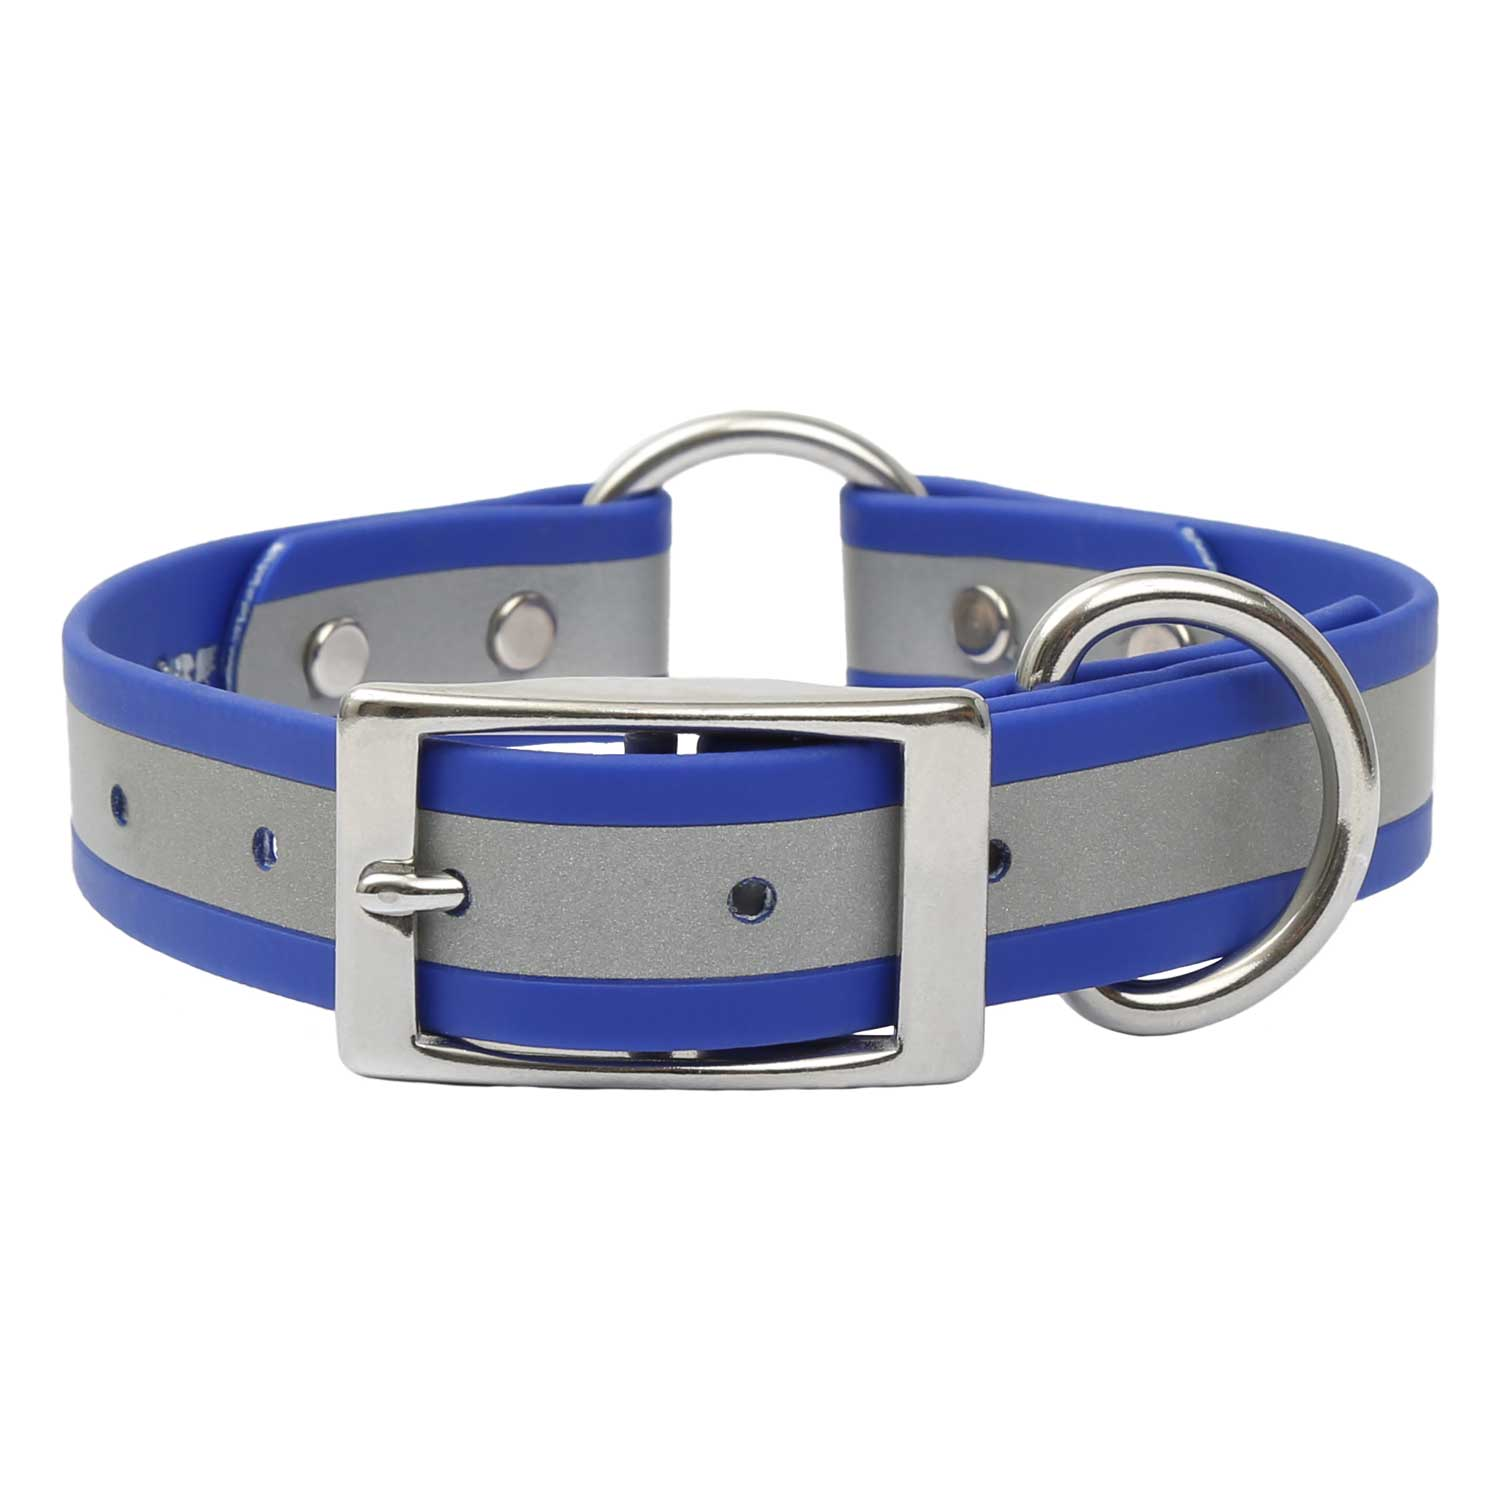 Reflective Waterproof Safety Collar - Blue